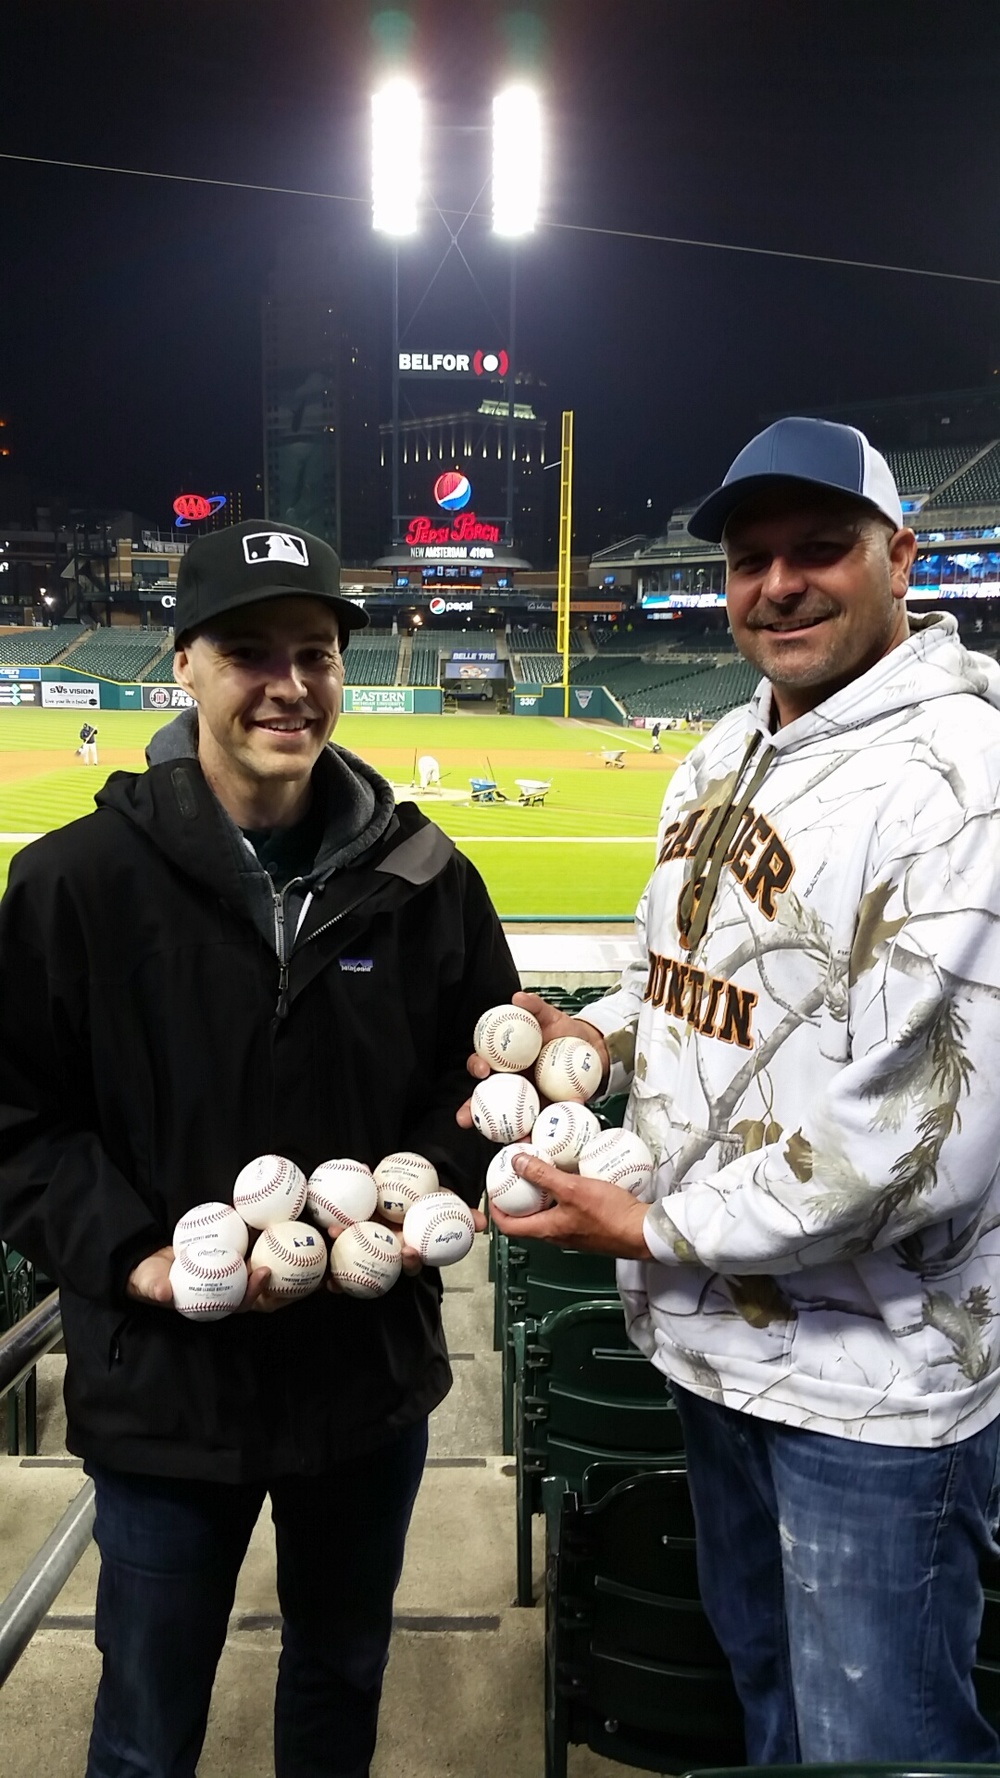 86_zack_and_bill_with_baseballs_final_tally_ten_to_six.JPG